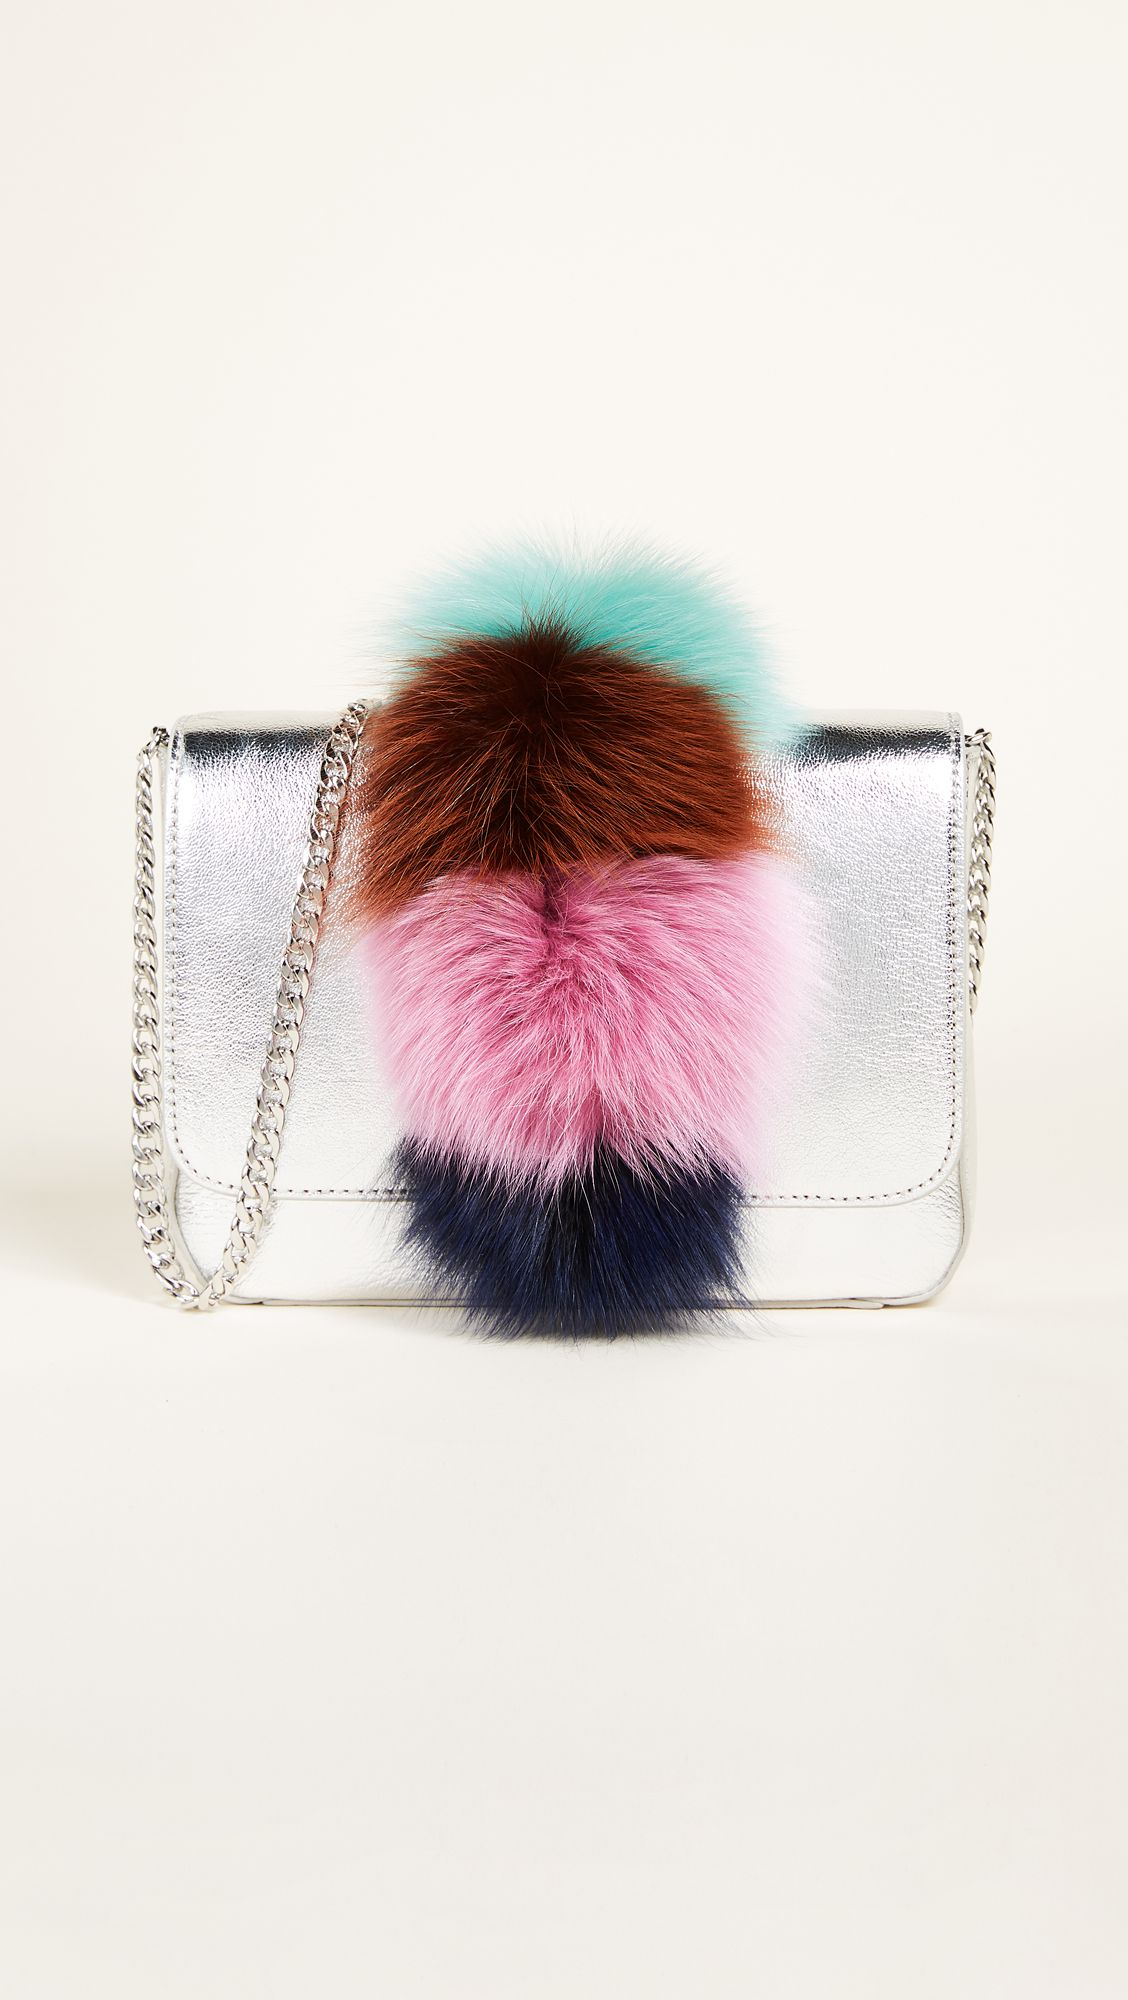 A silver bag with a faux fur handle